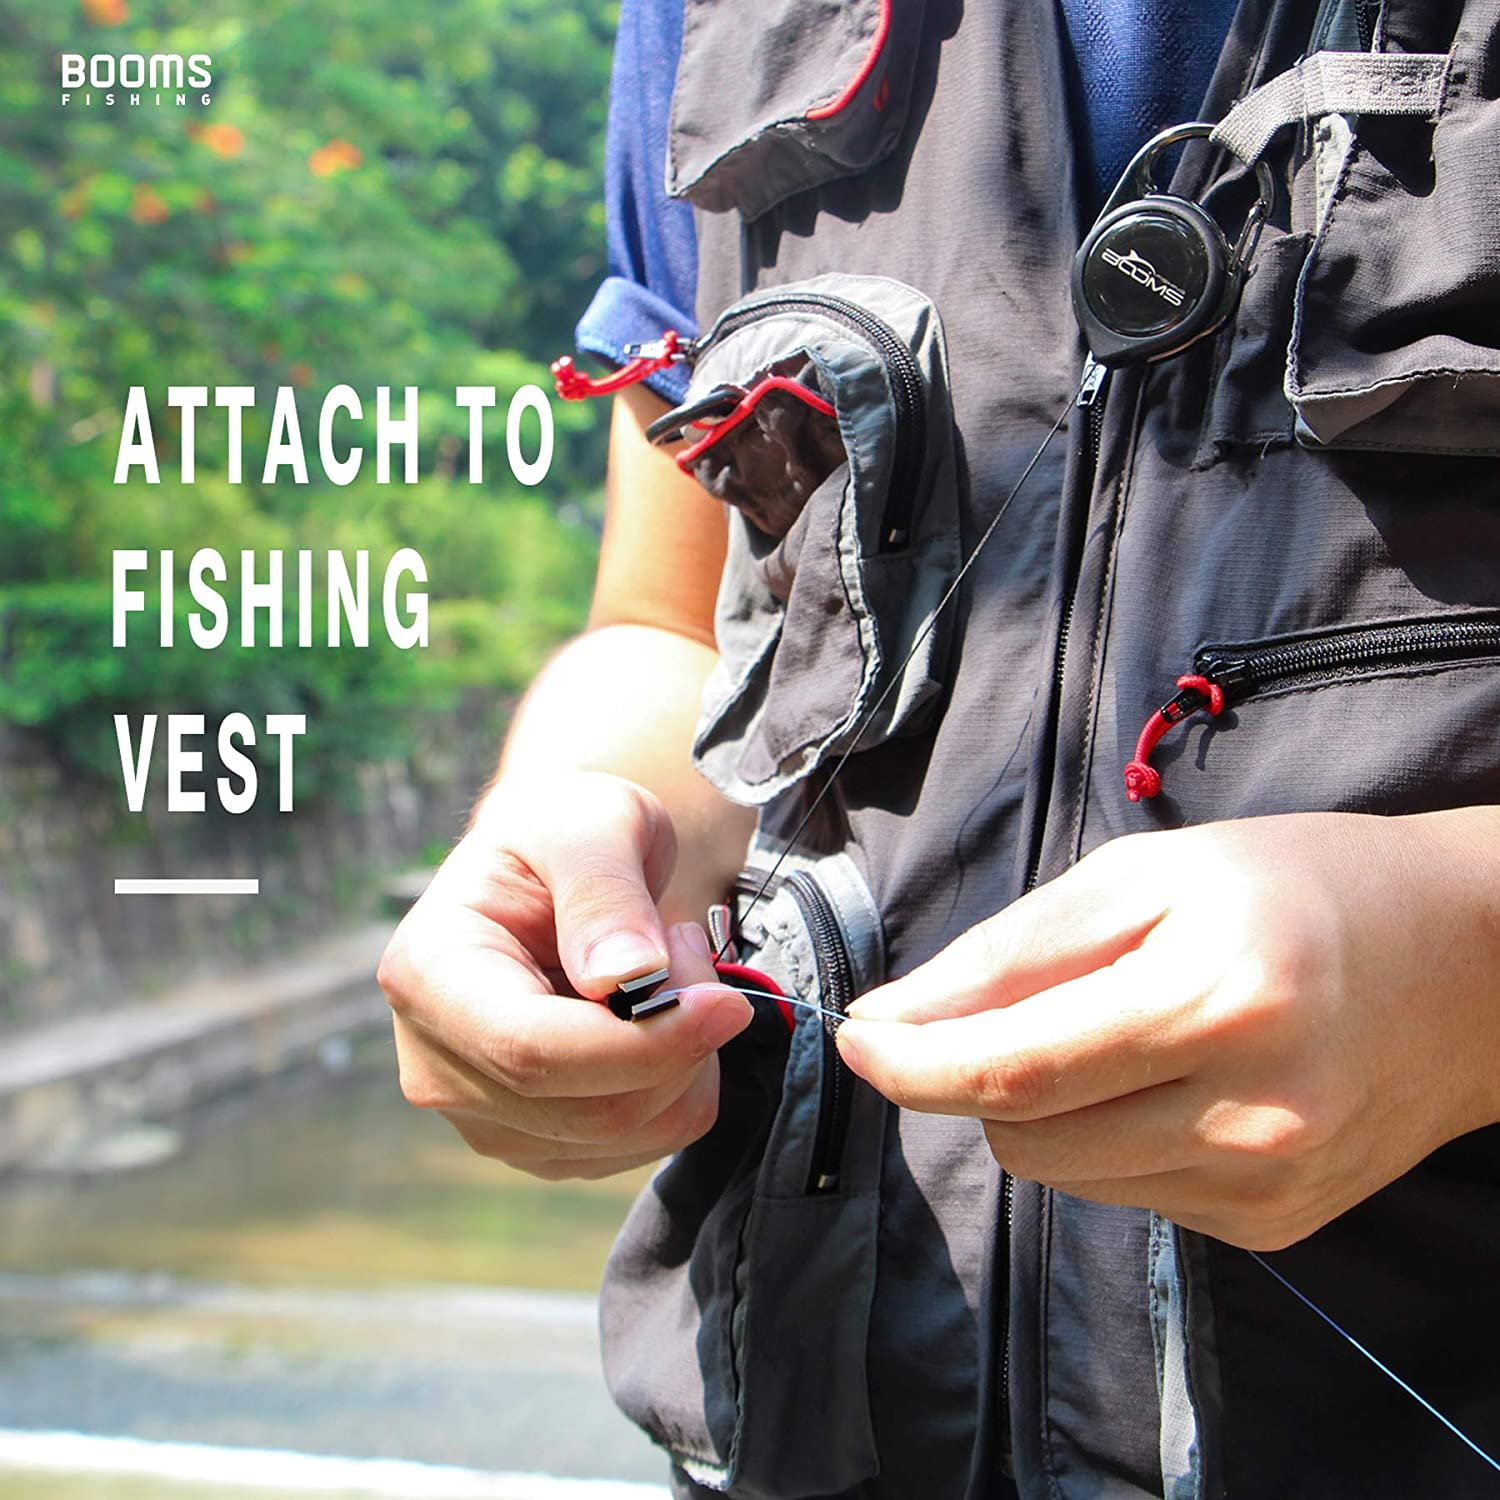 Booms Fishing FC2 Fly Fishing Quick Knot Tying Tool Fishing Line Clippers with Zinger Retractor,Mutilfunctional Nipper Tool Cutting Mono and Line,Built-in Knot Tyer and Fly Eye Clearing Needle